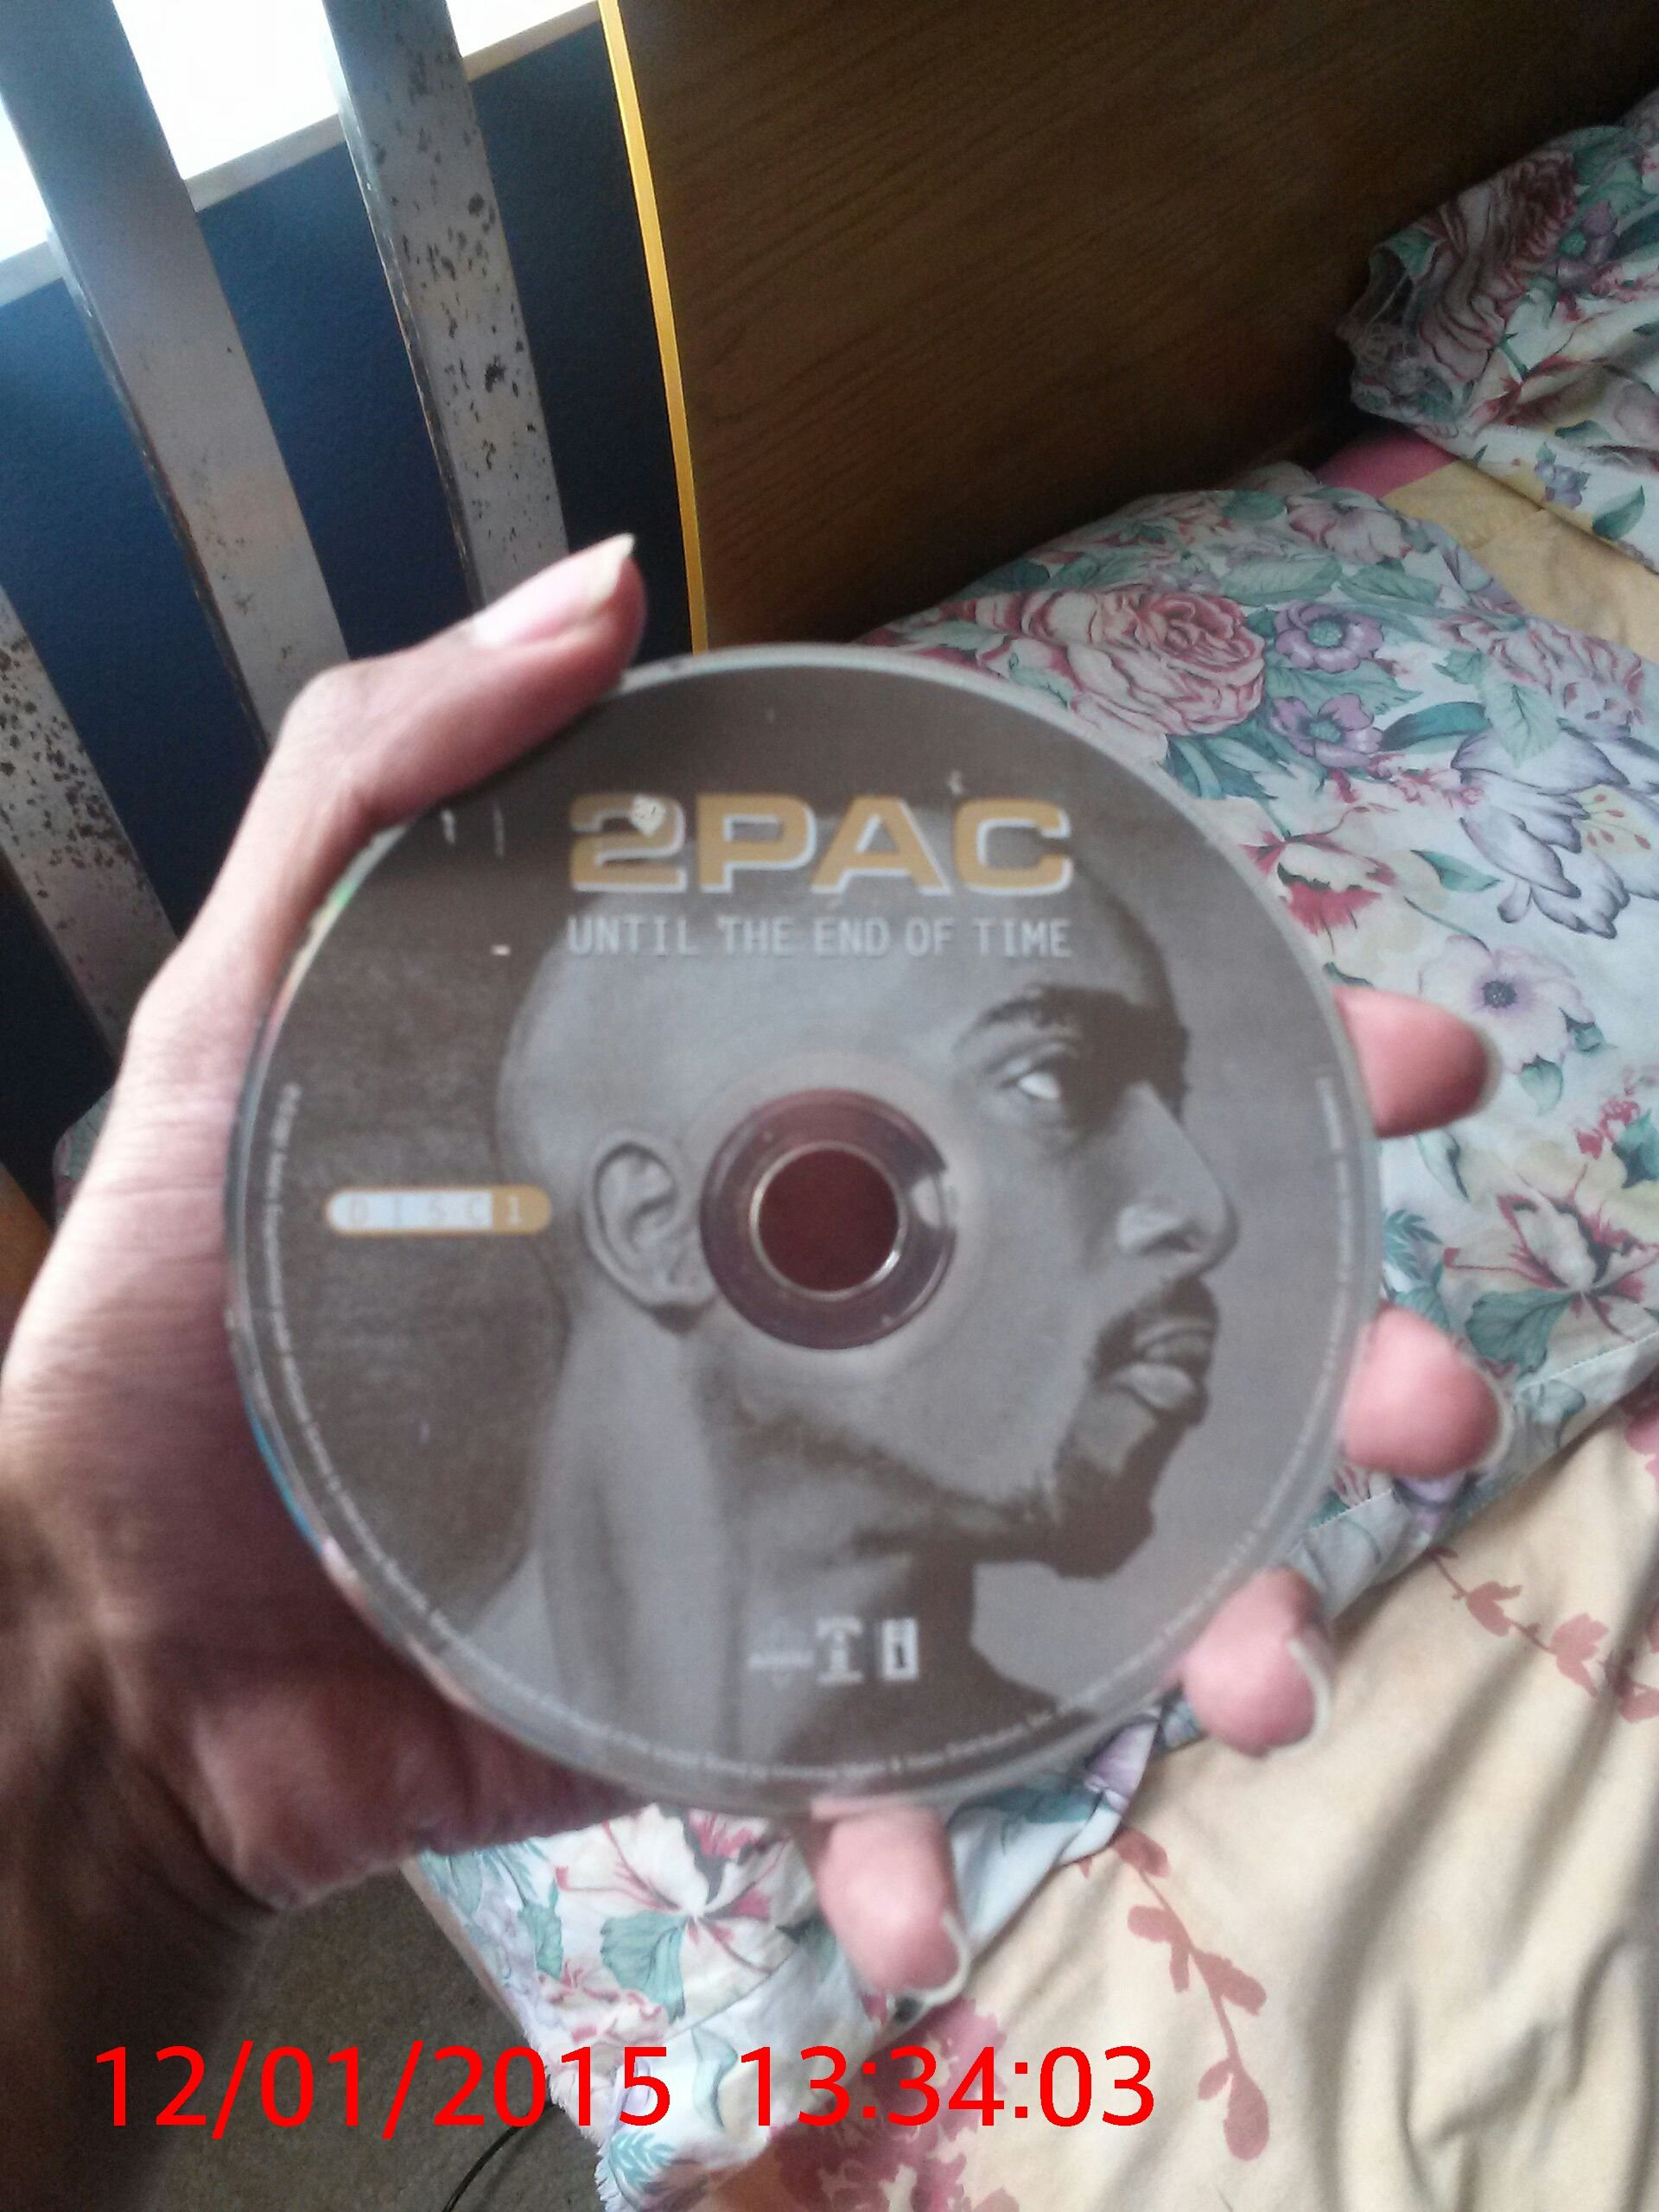 2001 Release Of 2pac Until The End Of Time I Held History In My